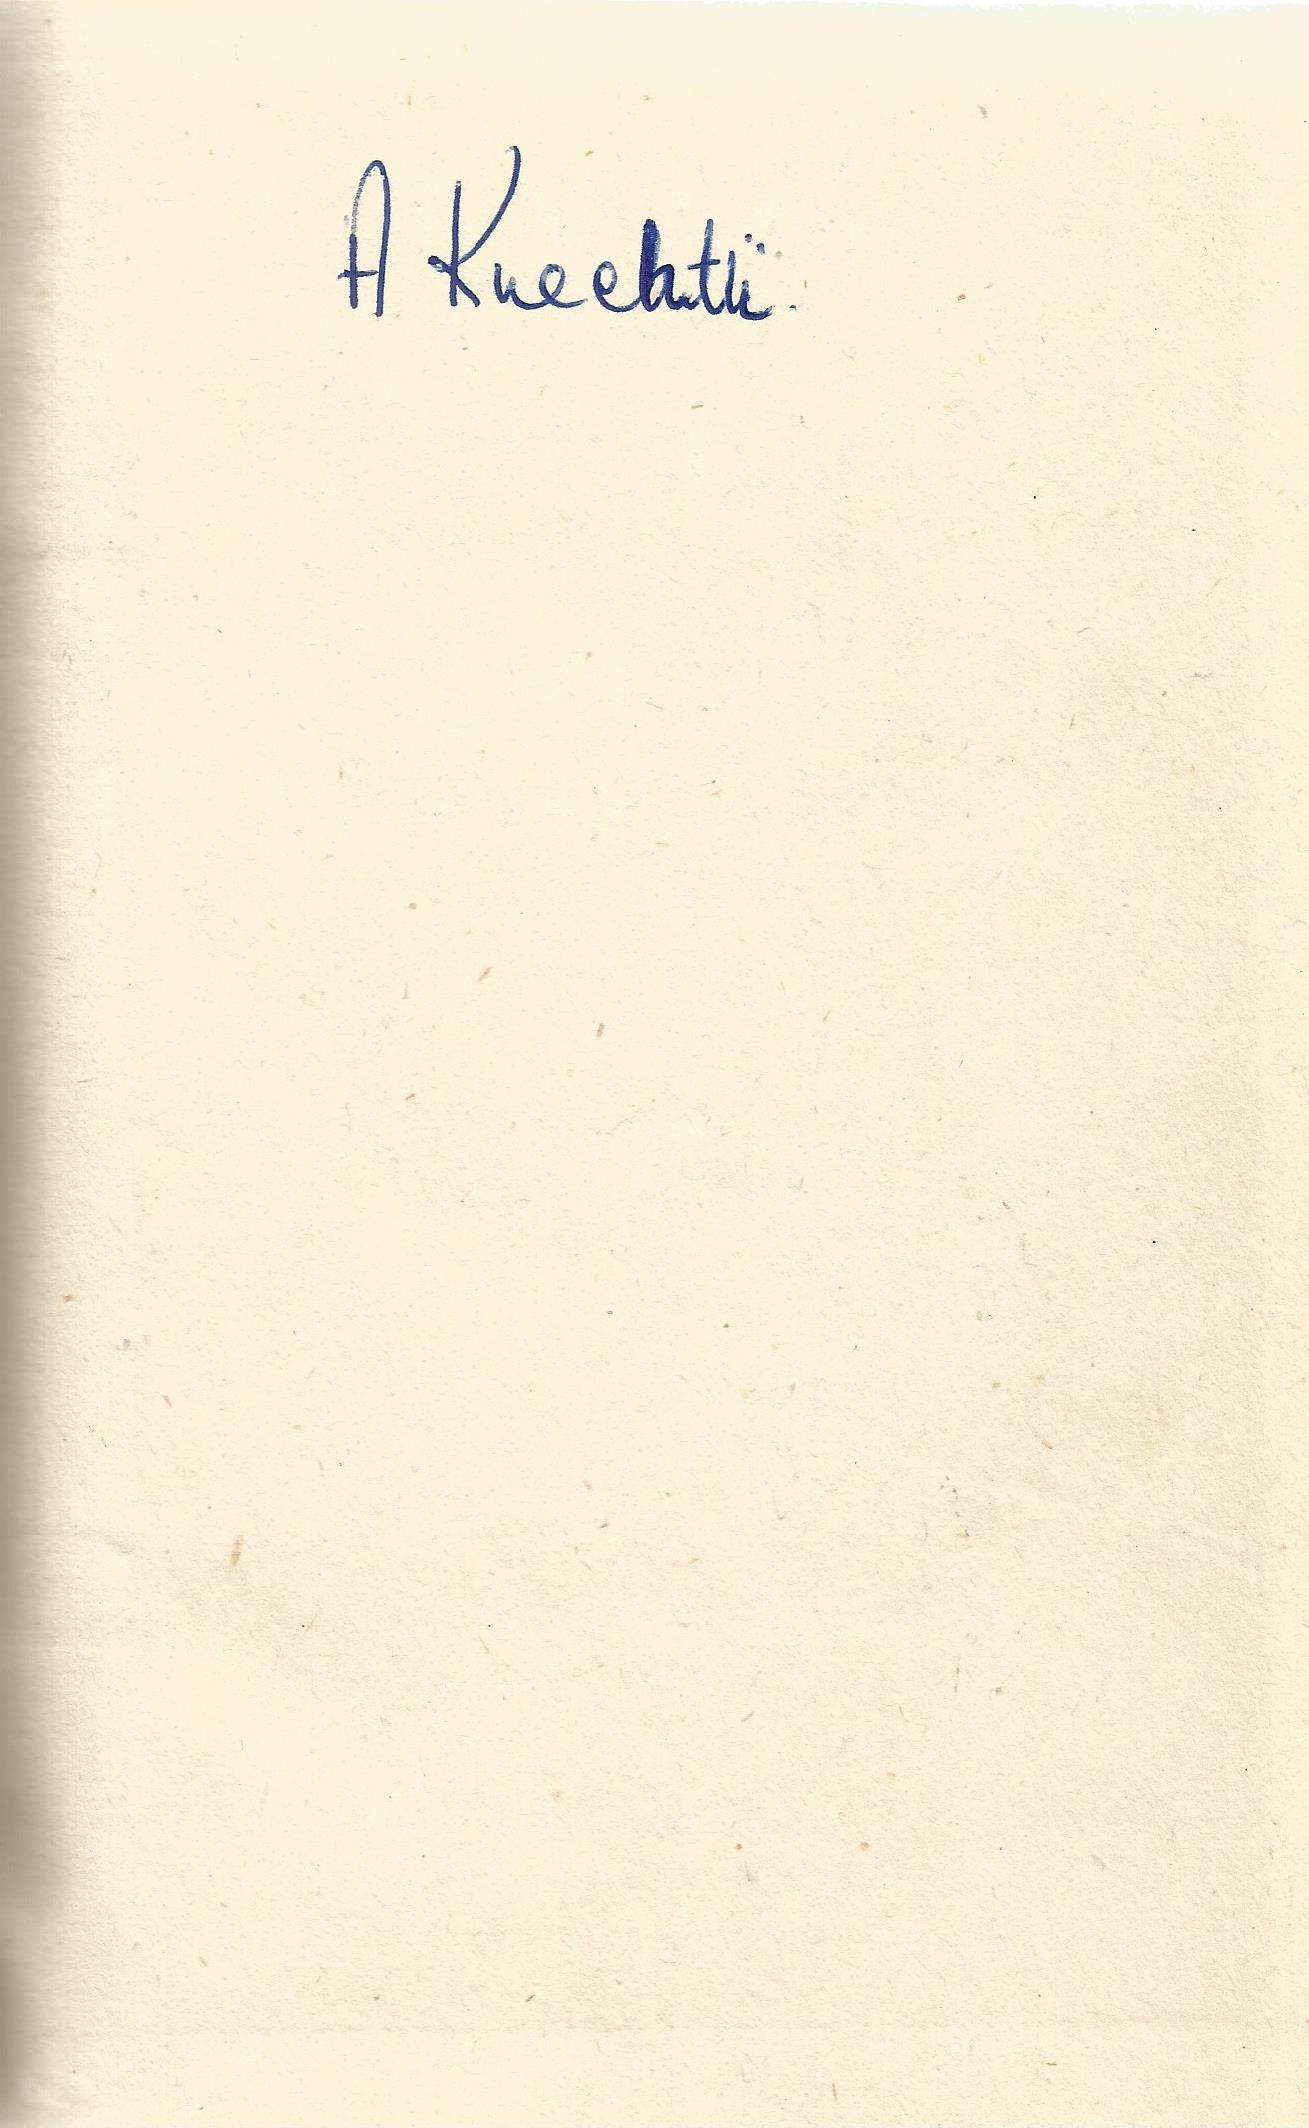 Sir Archibald McIndoe Family Photo Album plus 5 Hardback Books from His personal collection - Image 4 of 23